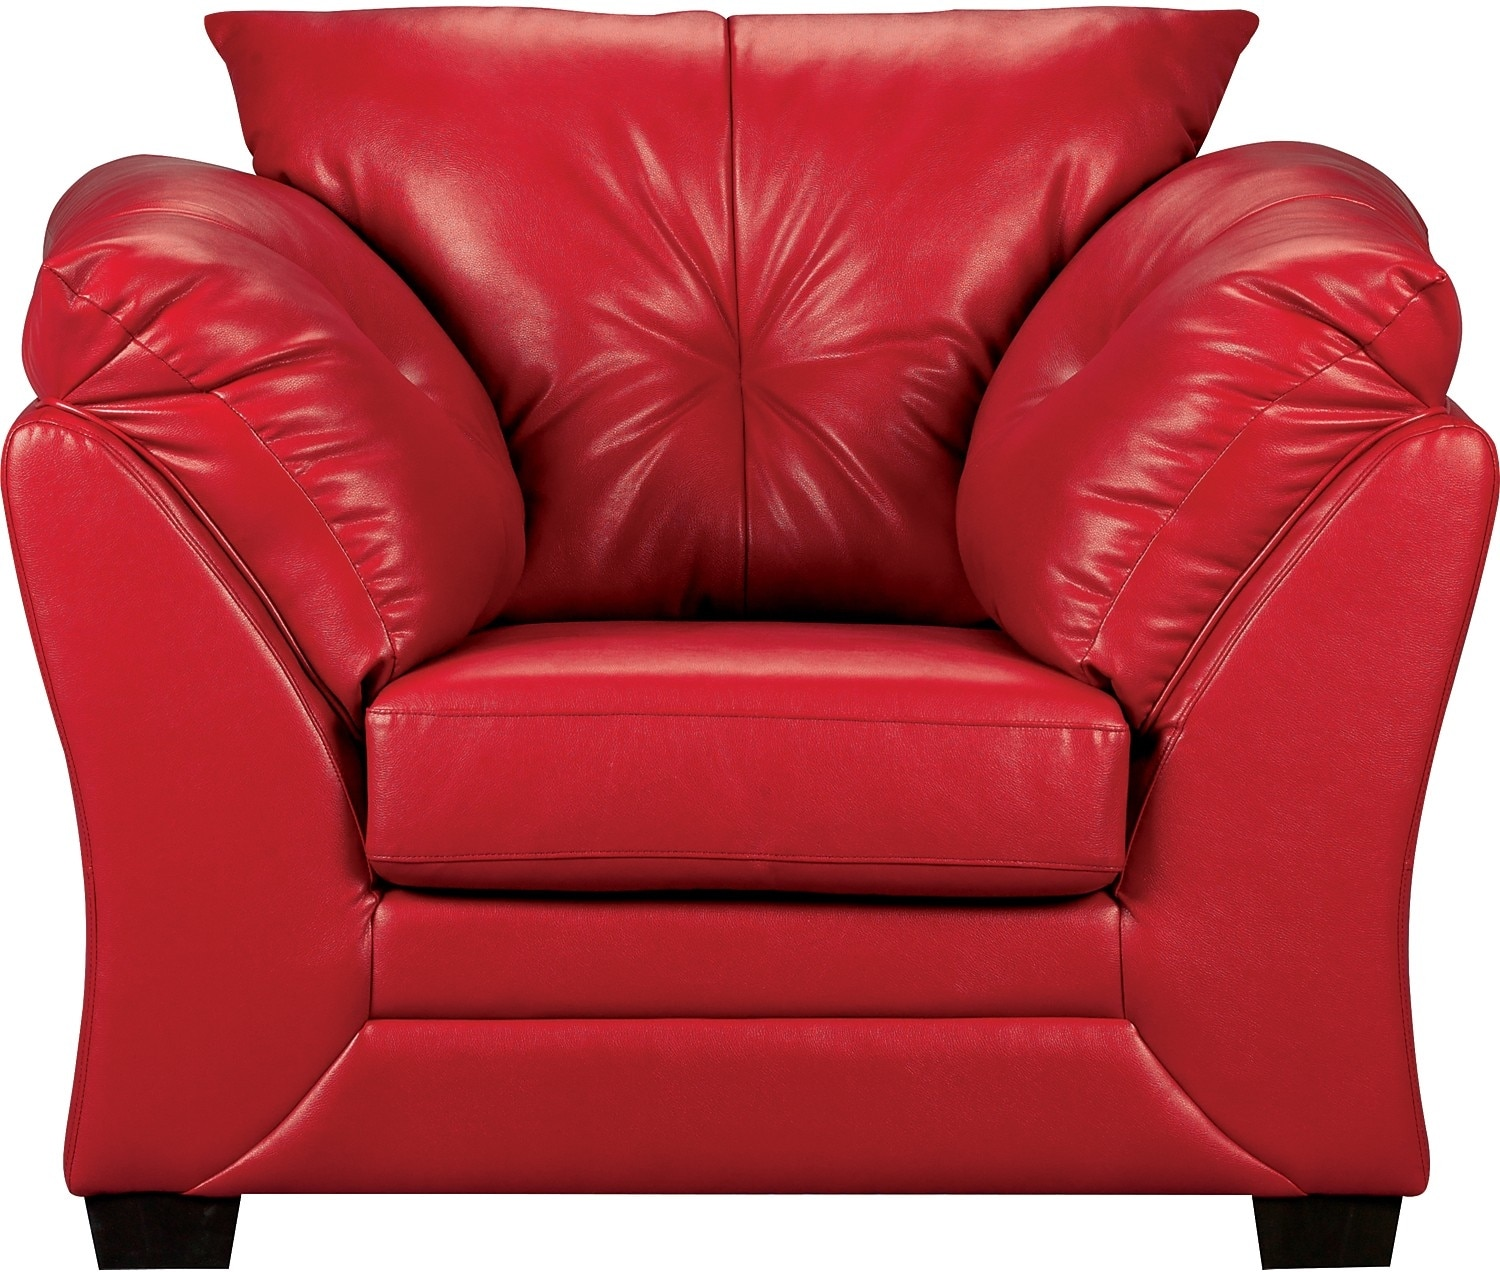 Max Faux Leather Chair - Red